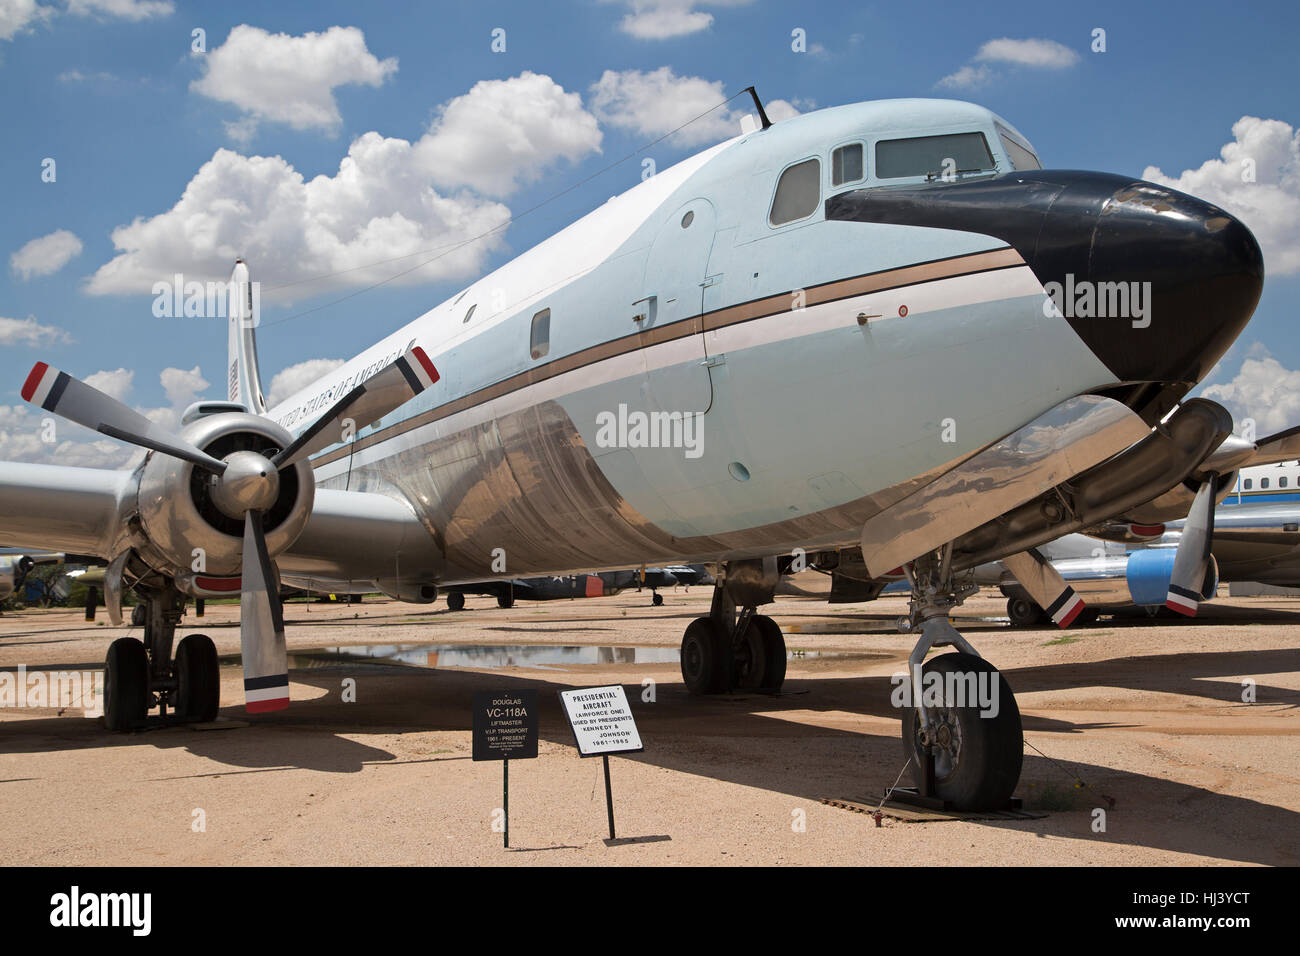 Airforce One, former presidential aircraft used by presidents Kennedy and Johnson 1961-1965 display at Pima Air - Stock Image